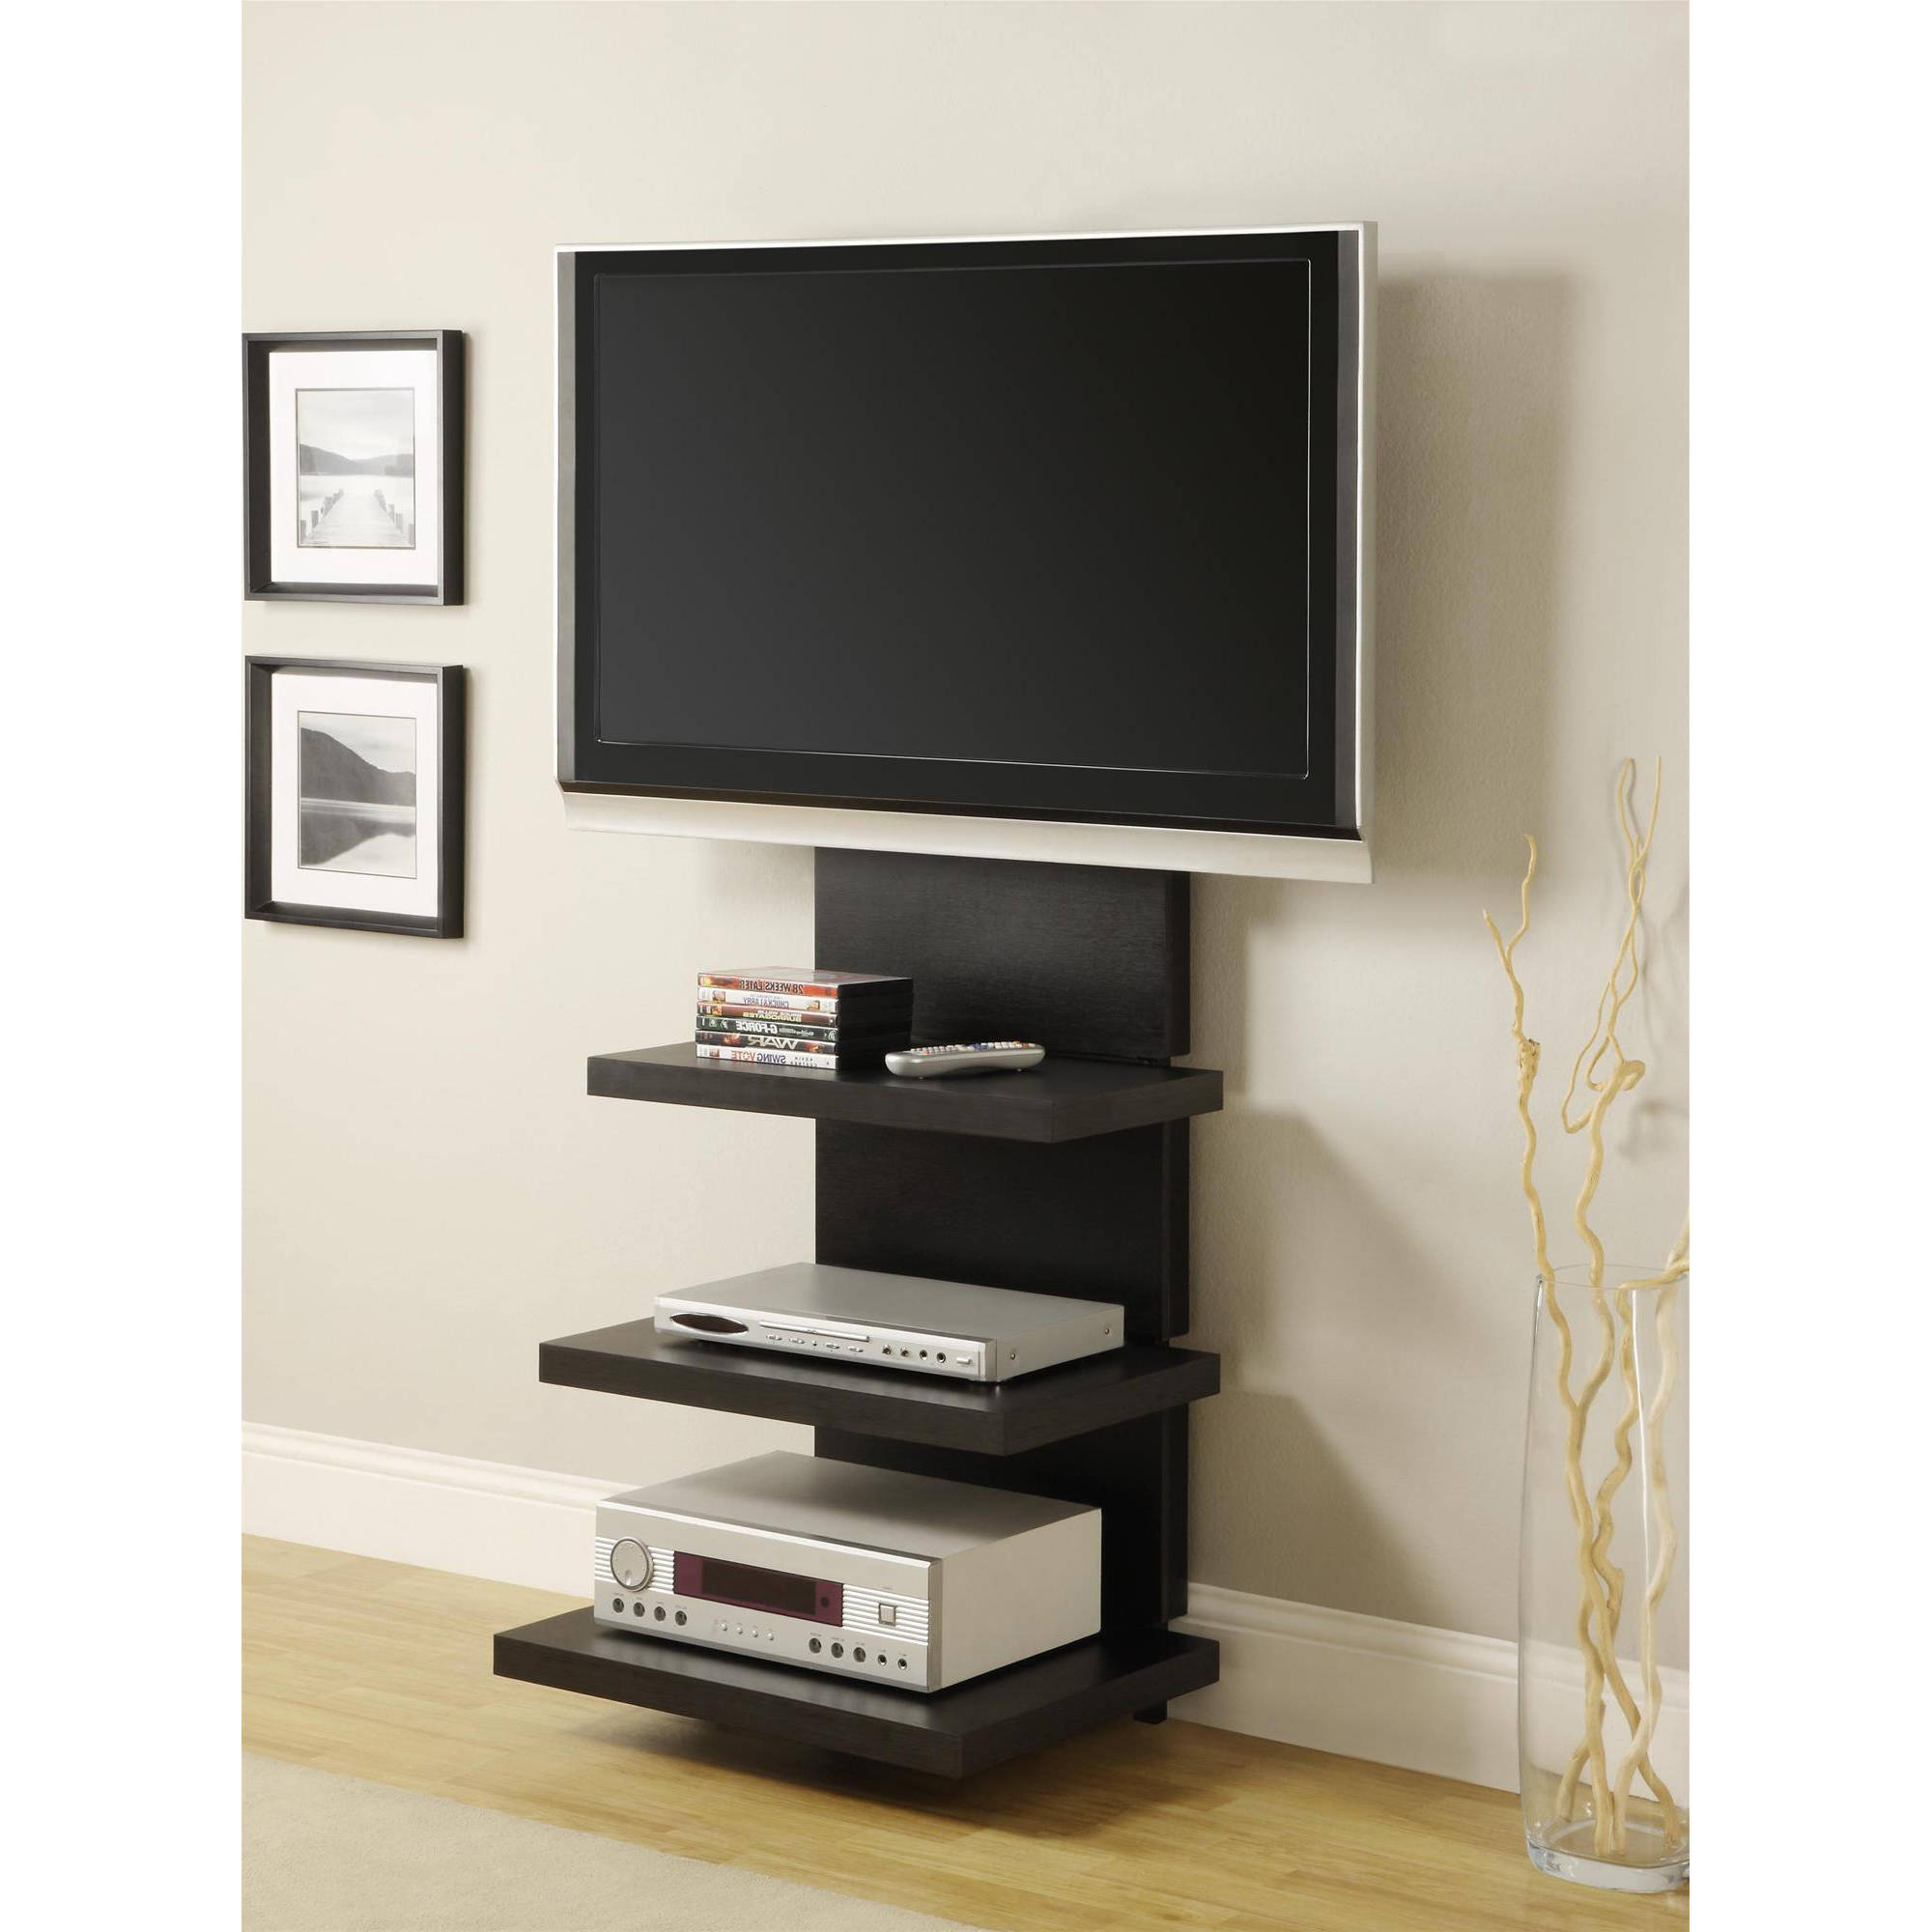 Ebay With Wall Mounted Tv Stands For Flat Screens (View 3 of 20)